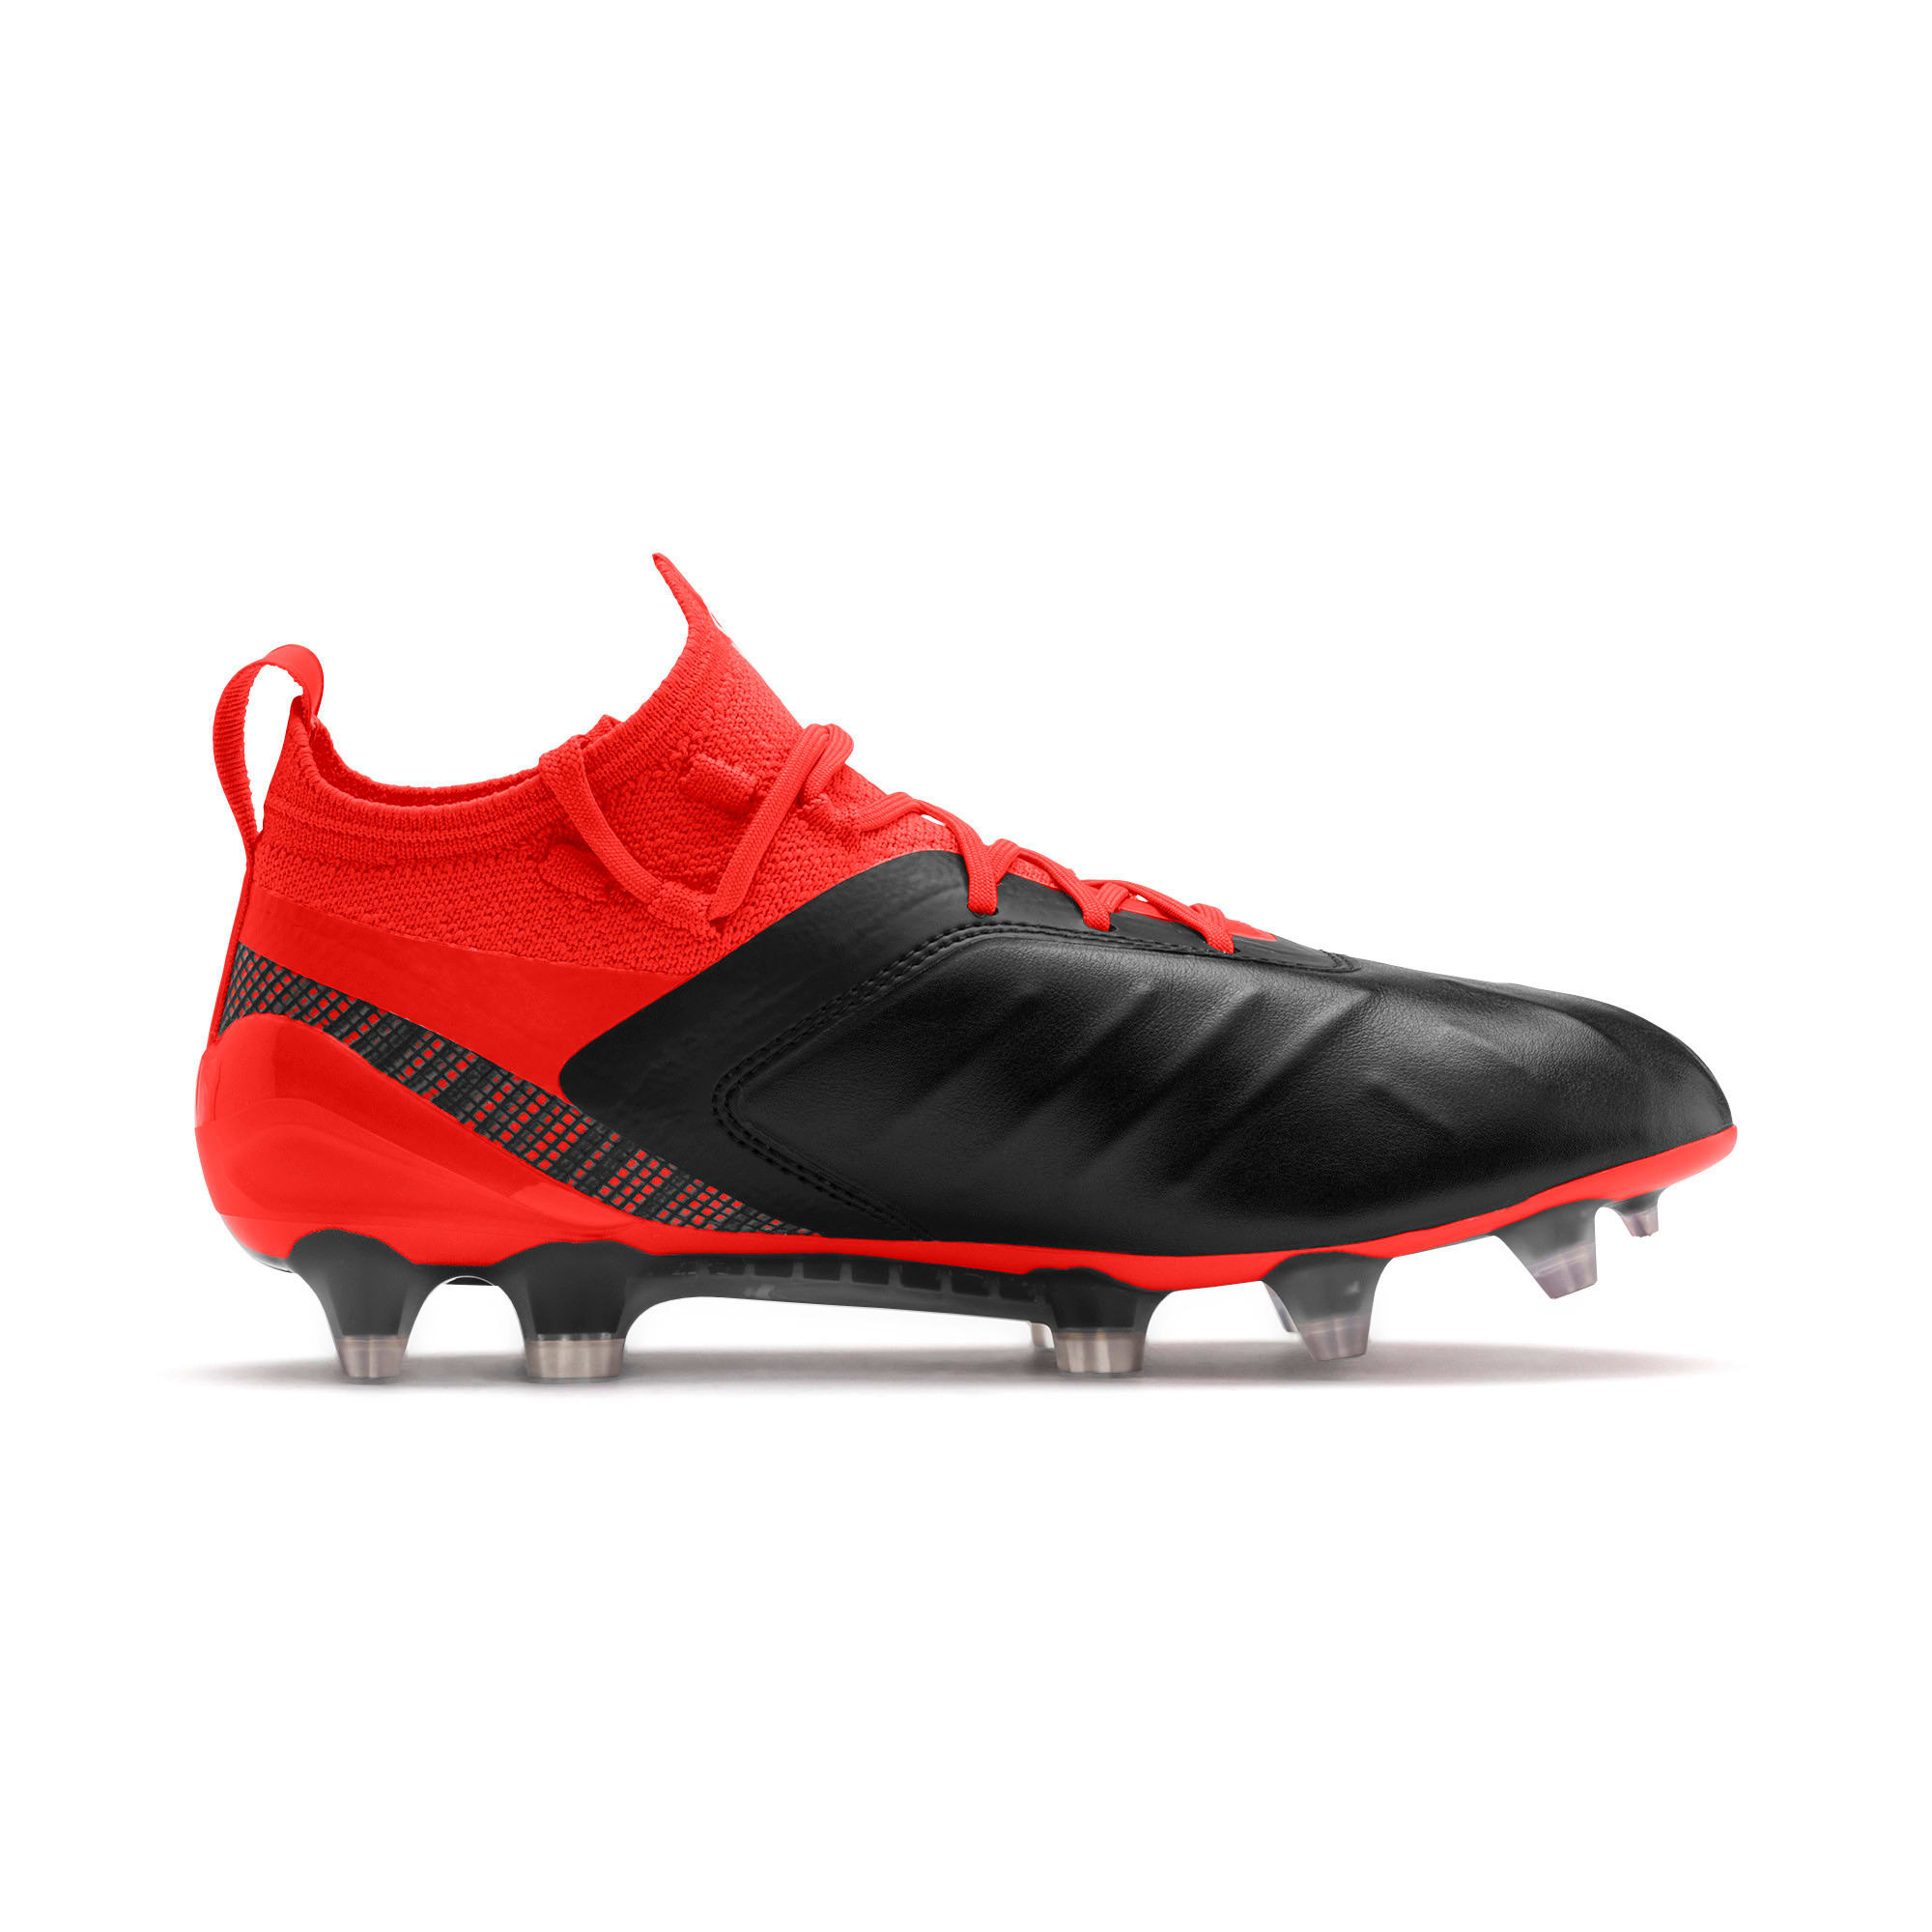 Thumbnail 5 of PUMA ONE 5.1 Youth Football Boots, Black-Nrgy Red-Aged Silver, medium